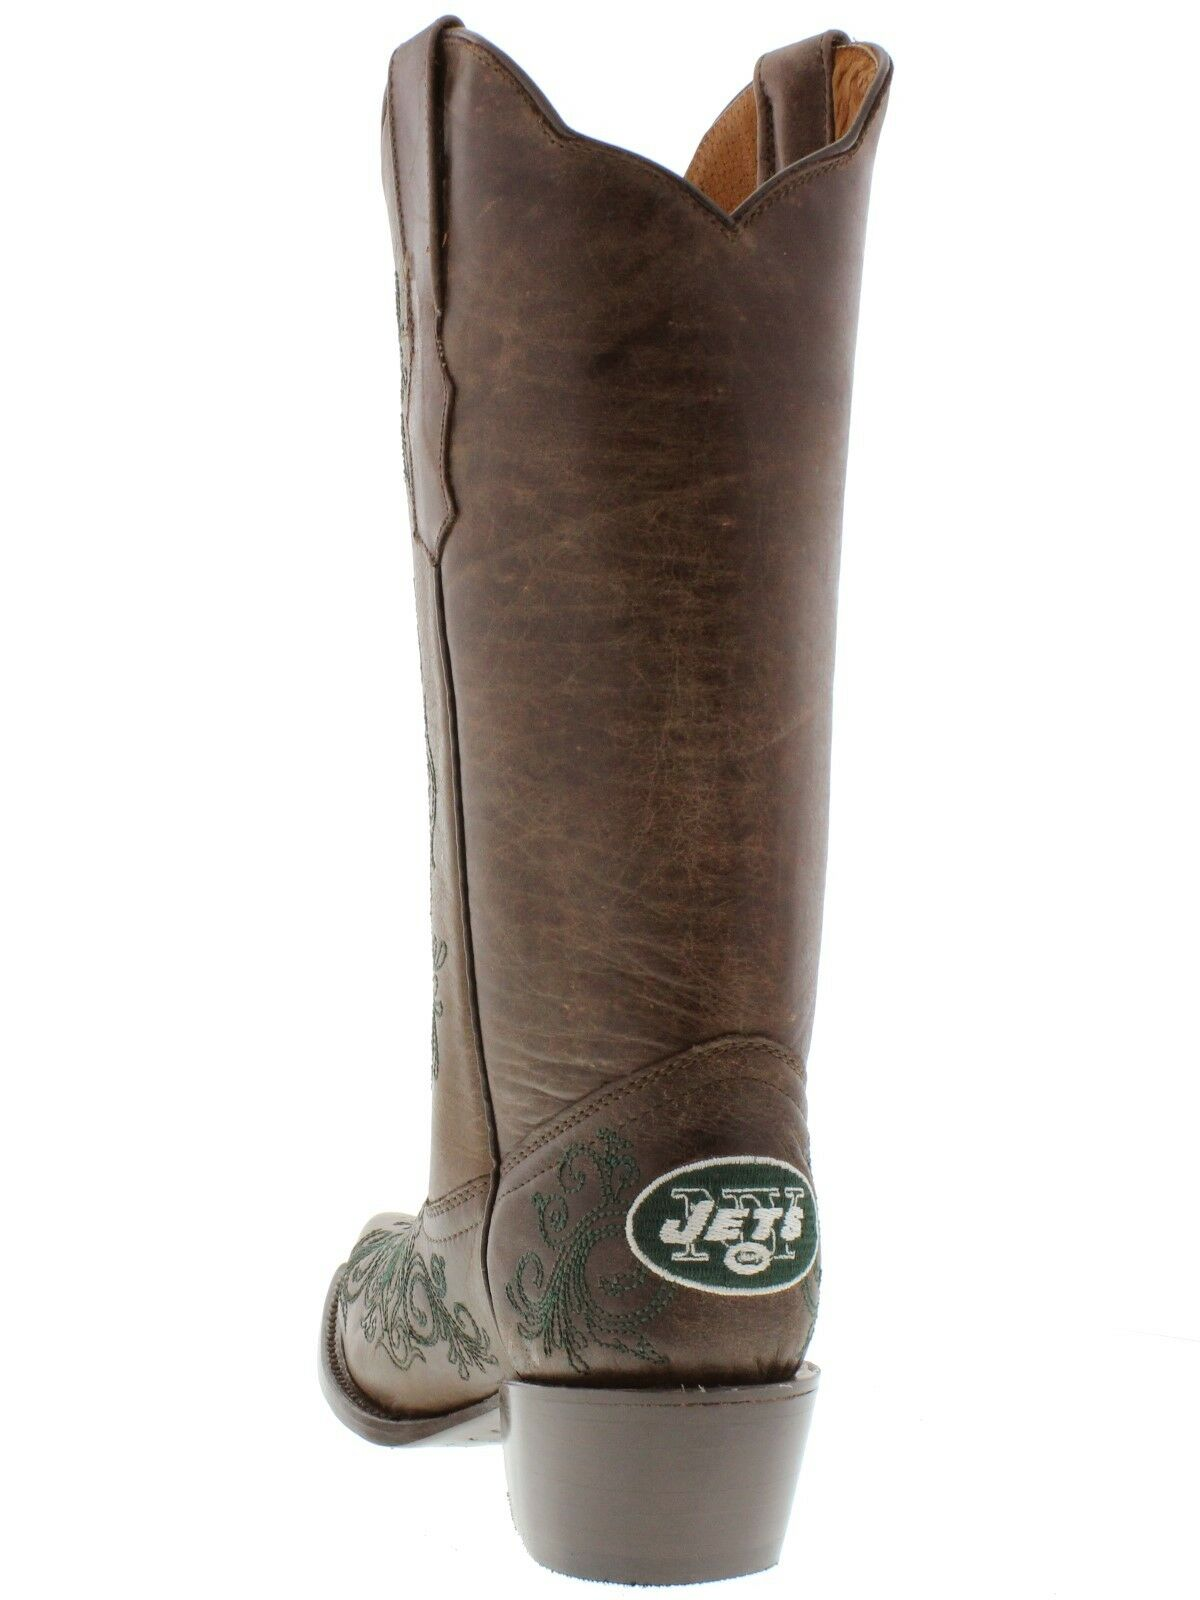 braun New York Jets Rodeo Riding Leather Leather Leather Cowboy Stiefel Western Snip Toe new 1d22d3